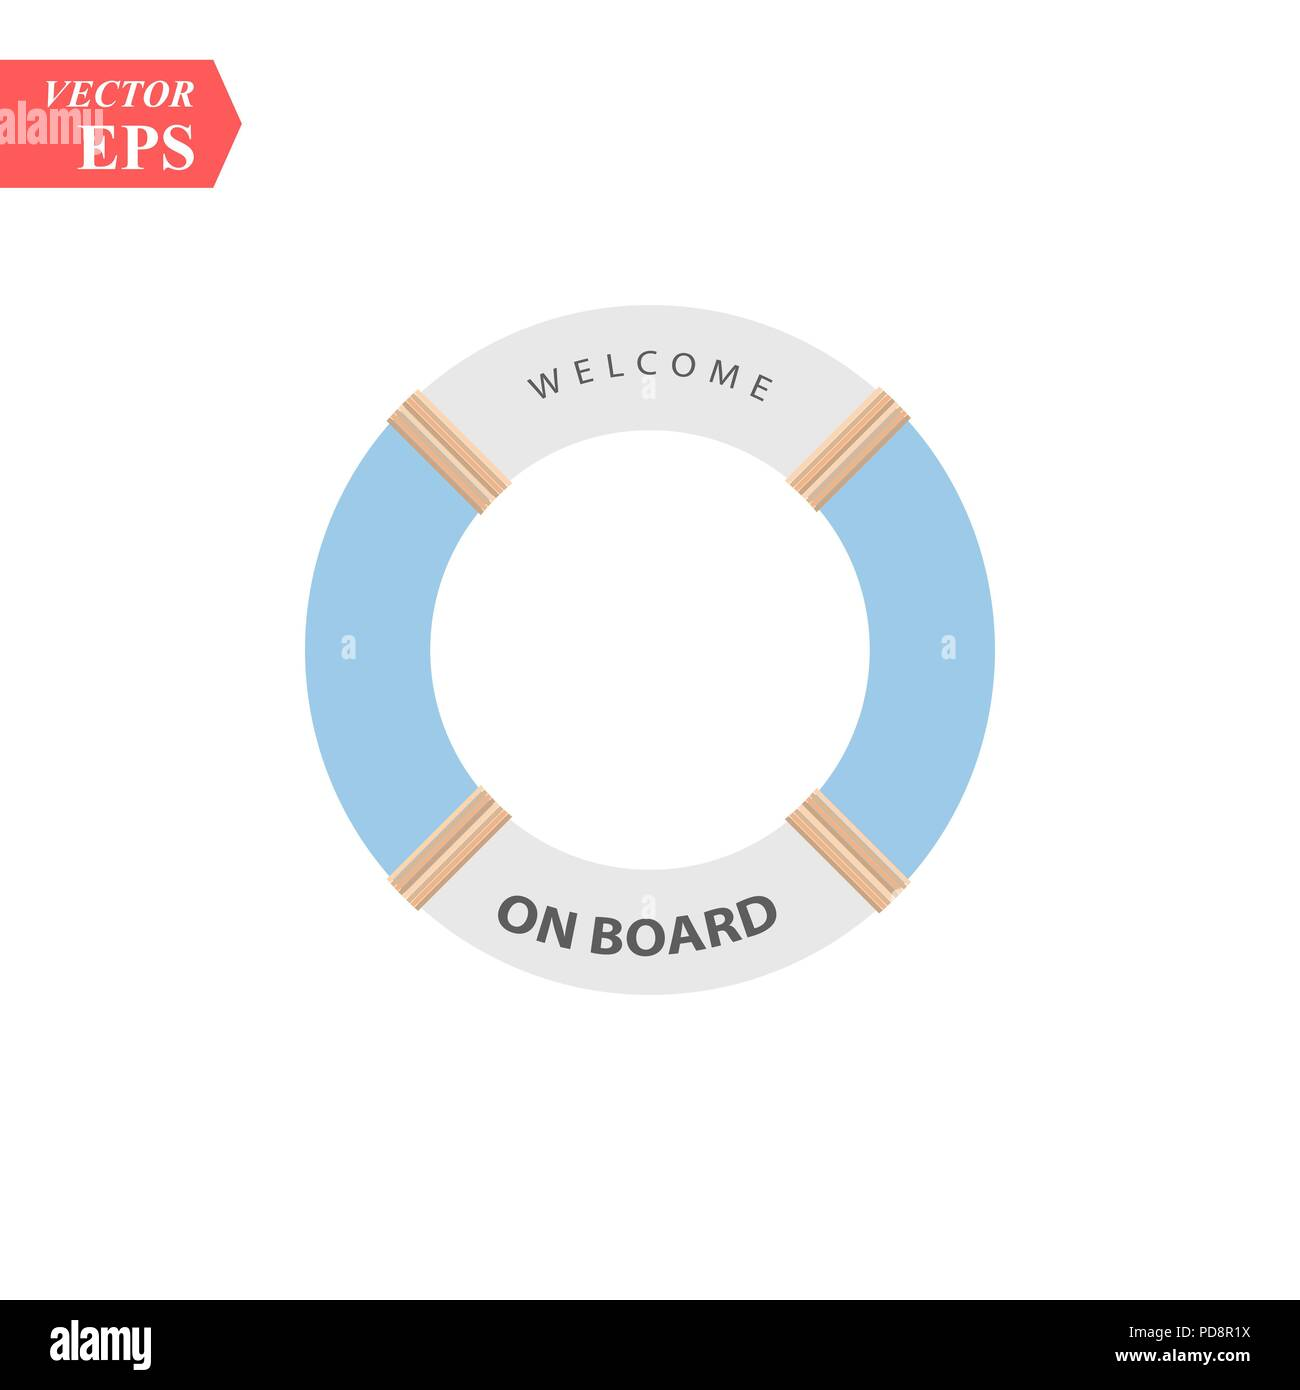 Lifeboat float icon, vector illustration design. Travel icons. - Stock Vector